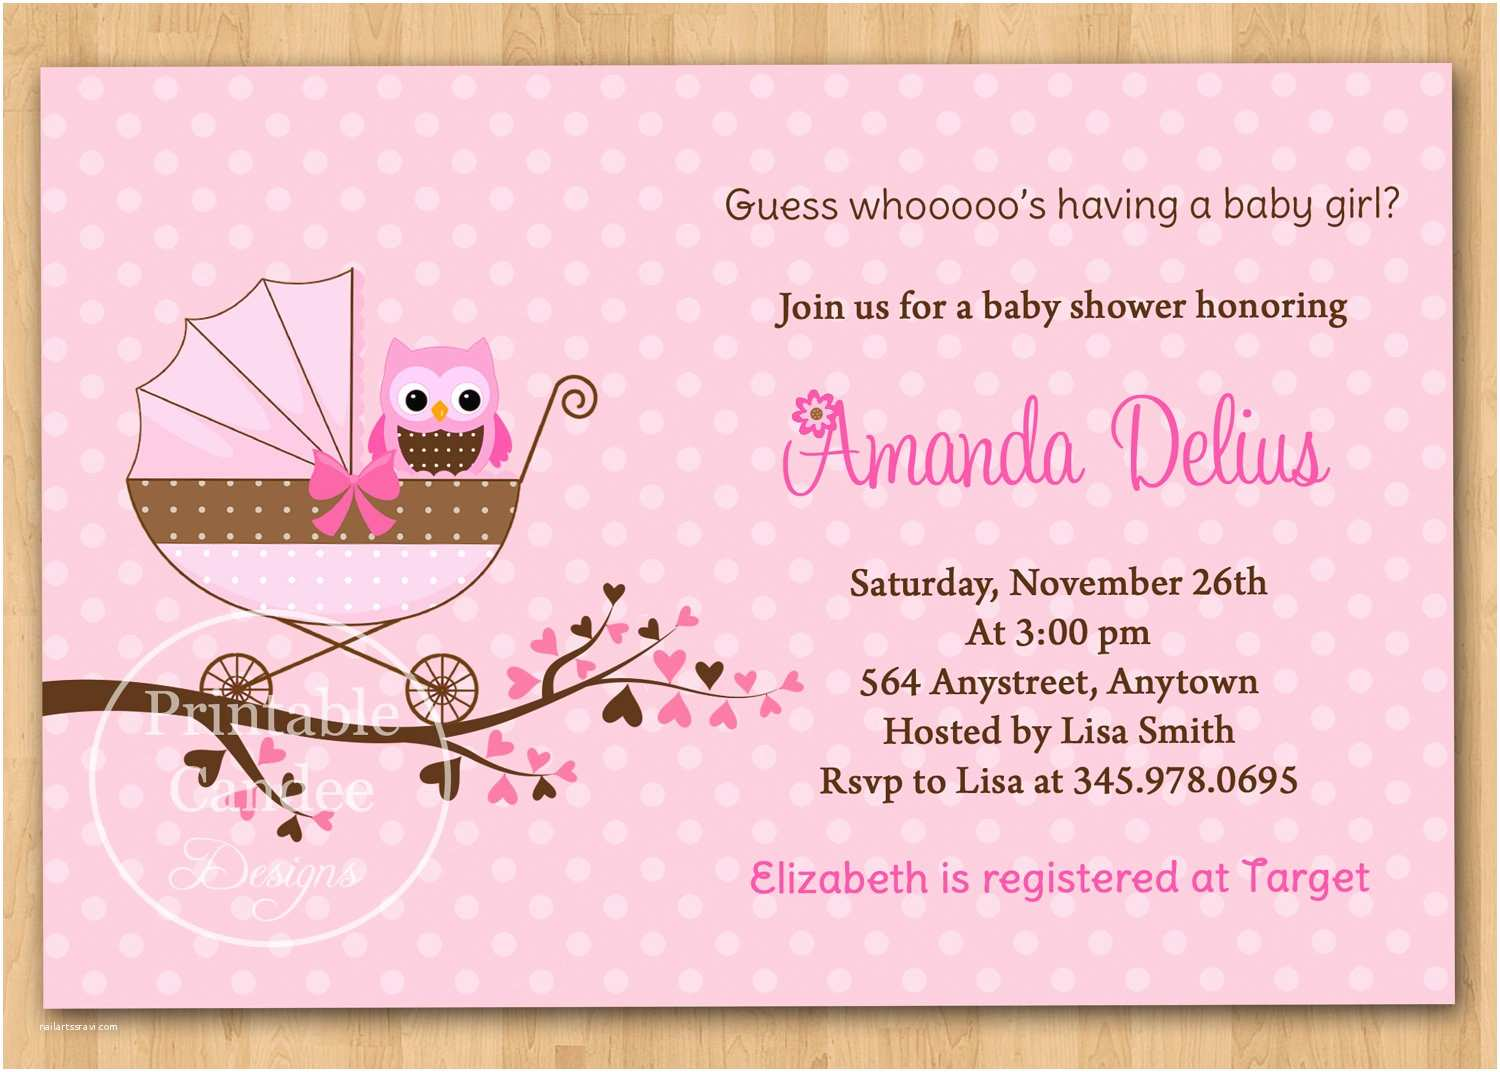 Free Baby Shower Invitations for Girls Free Printable Baby Shower Invitations for Girls